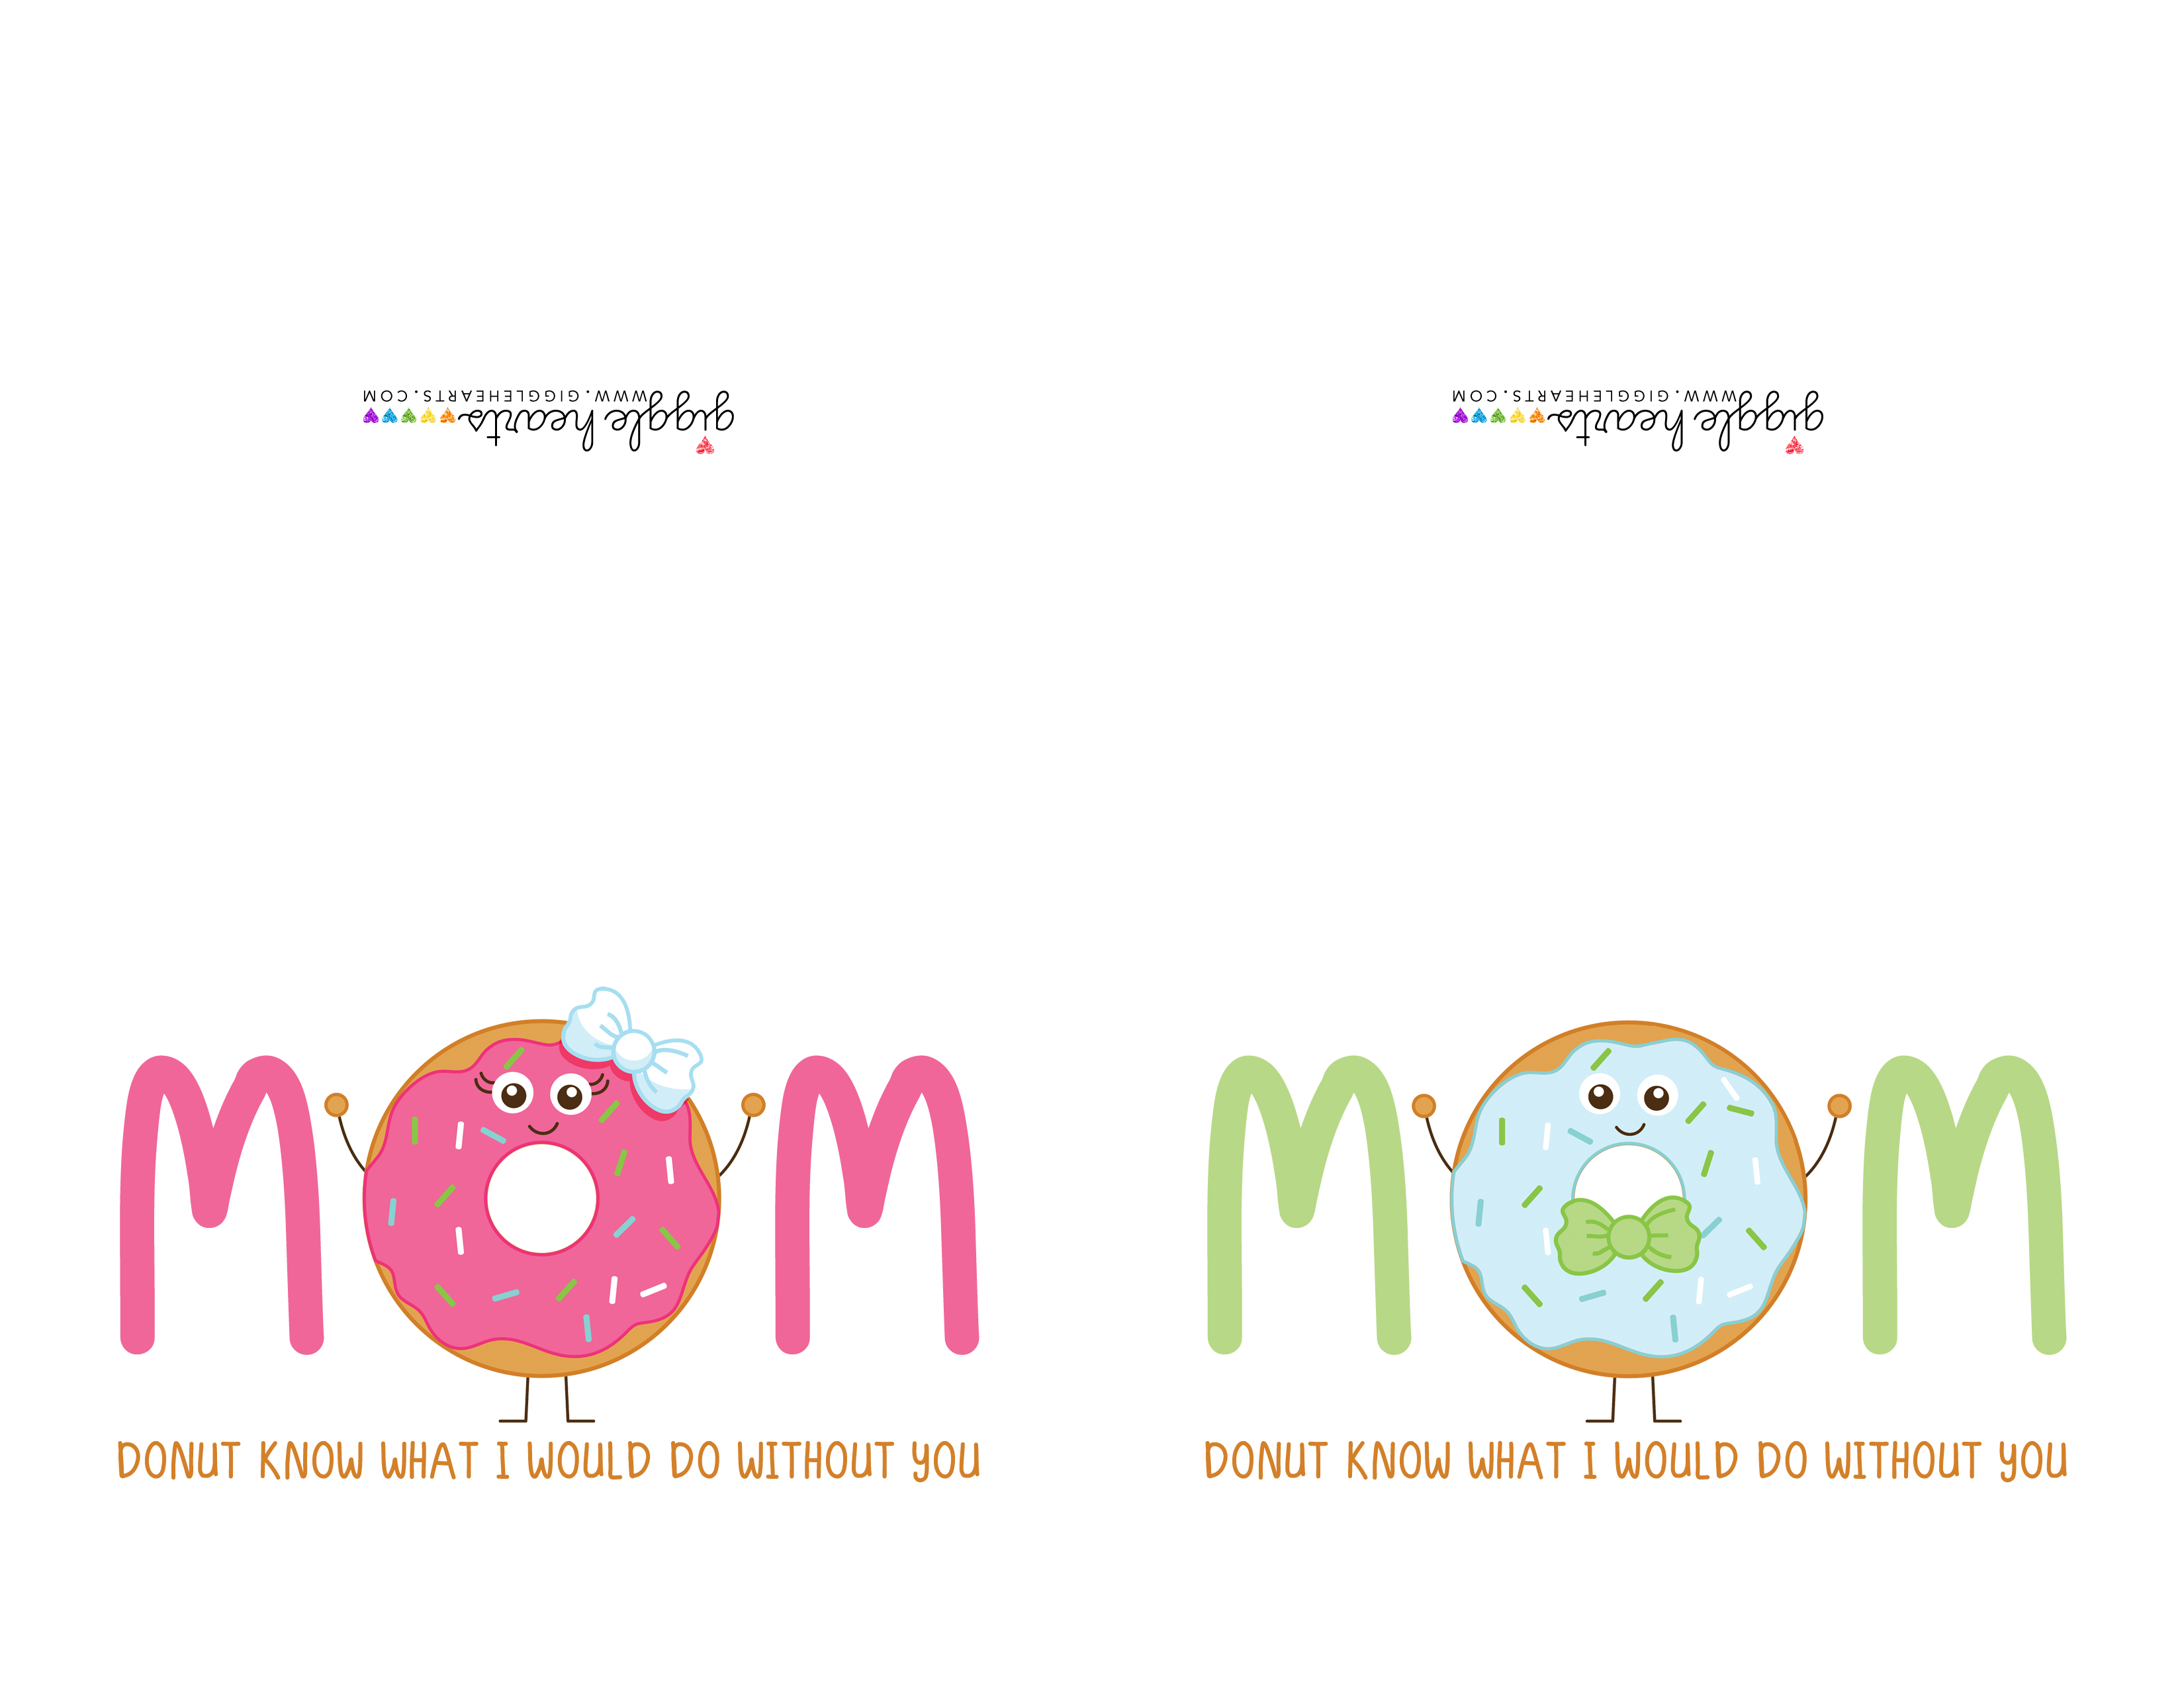 free printable birthday cards for mom and grandma ; printable-birthday-cards-for-mom-new-family-free-printable-mothers-day-cards-add-photo-also-printable-of-printable-birthday-cards-for-mom